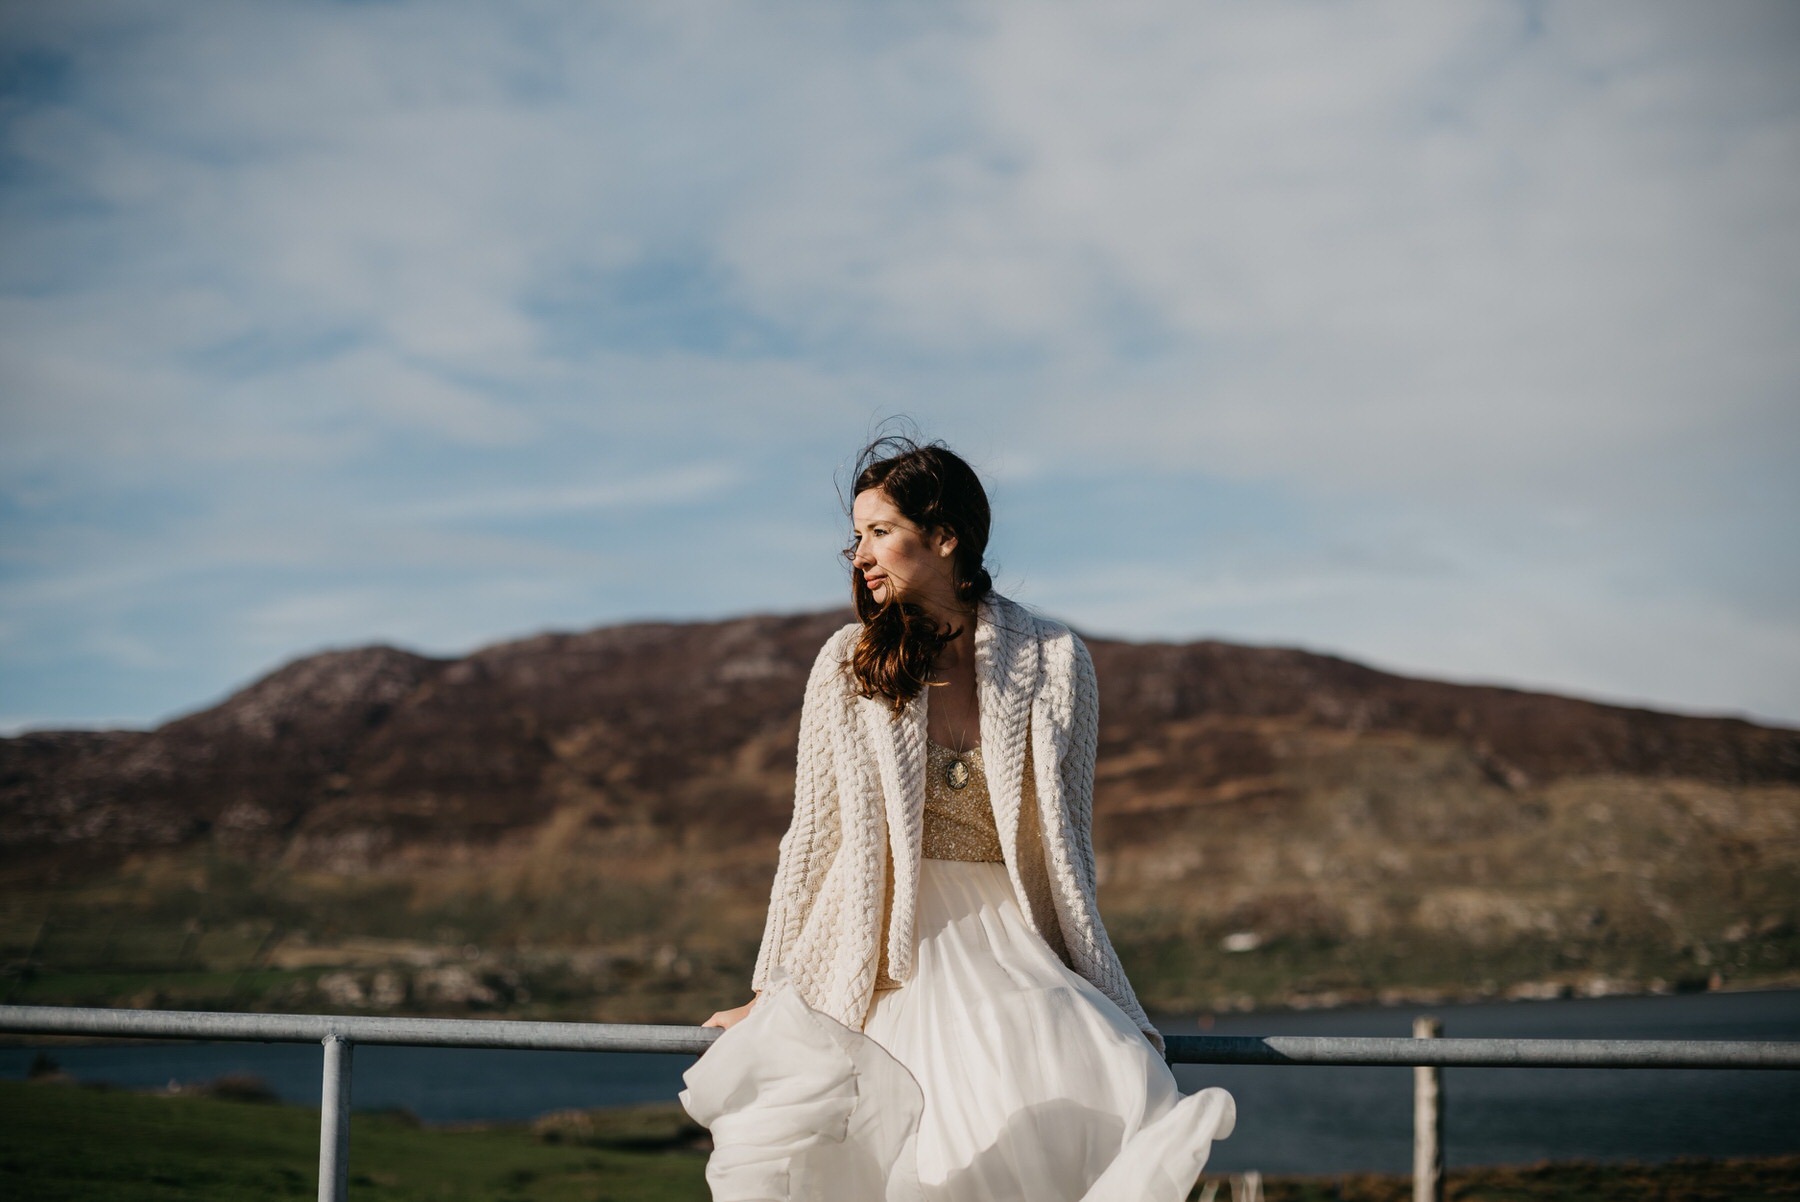 Bride sitting on a fence in the wind